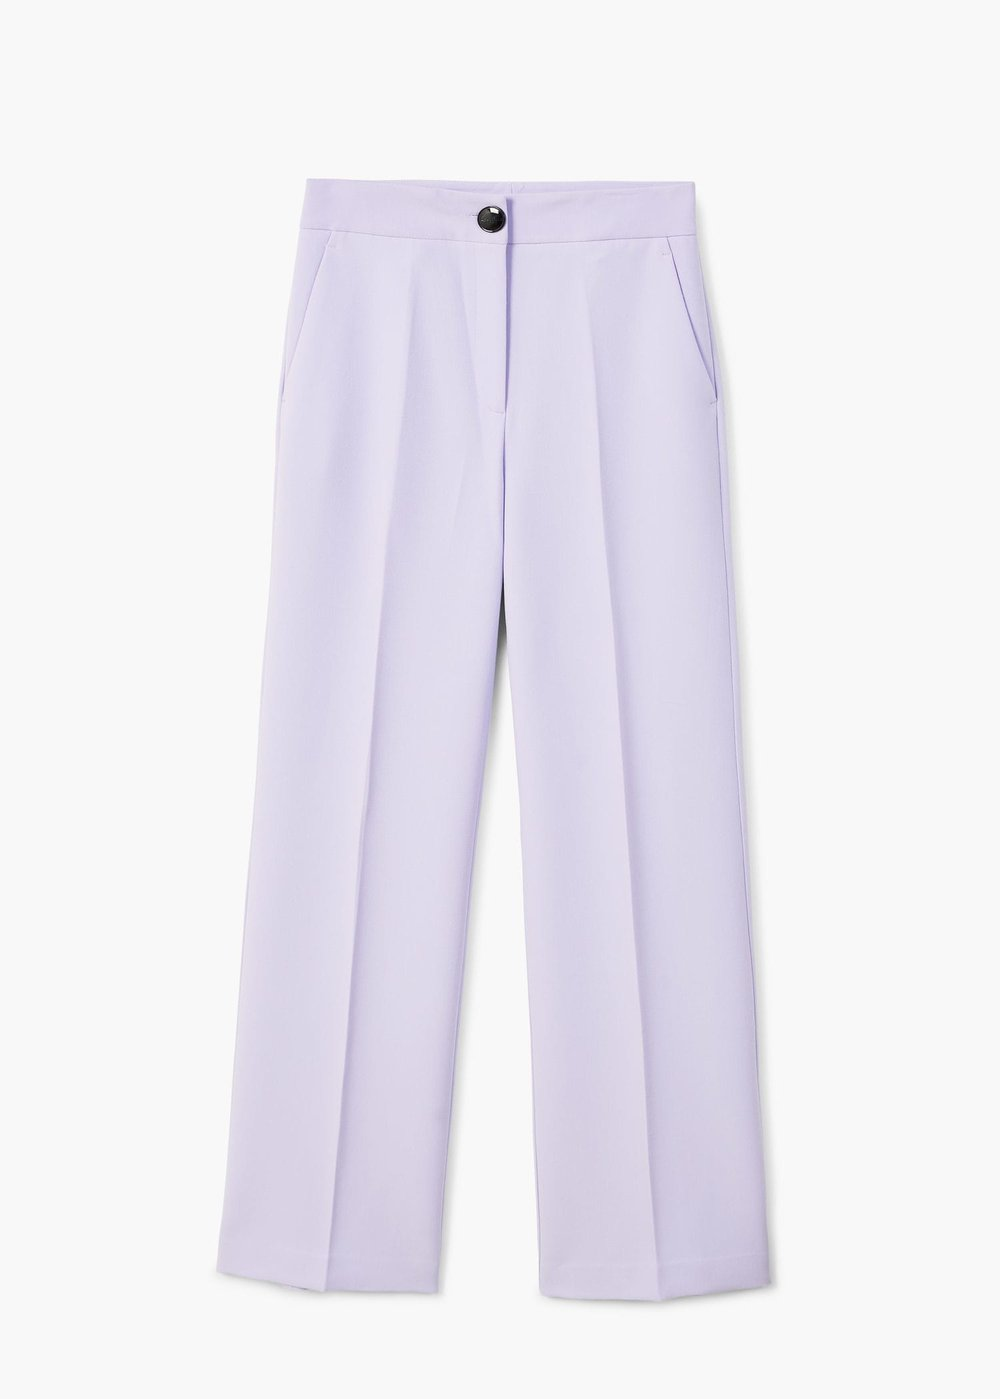 Mango High-waist Trousers , $60